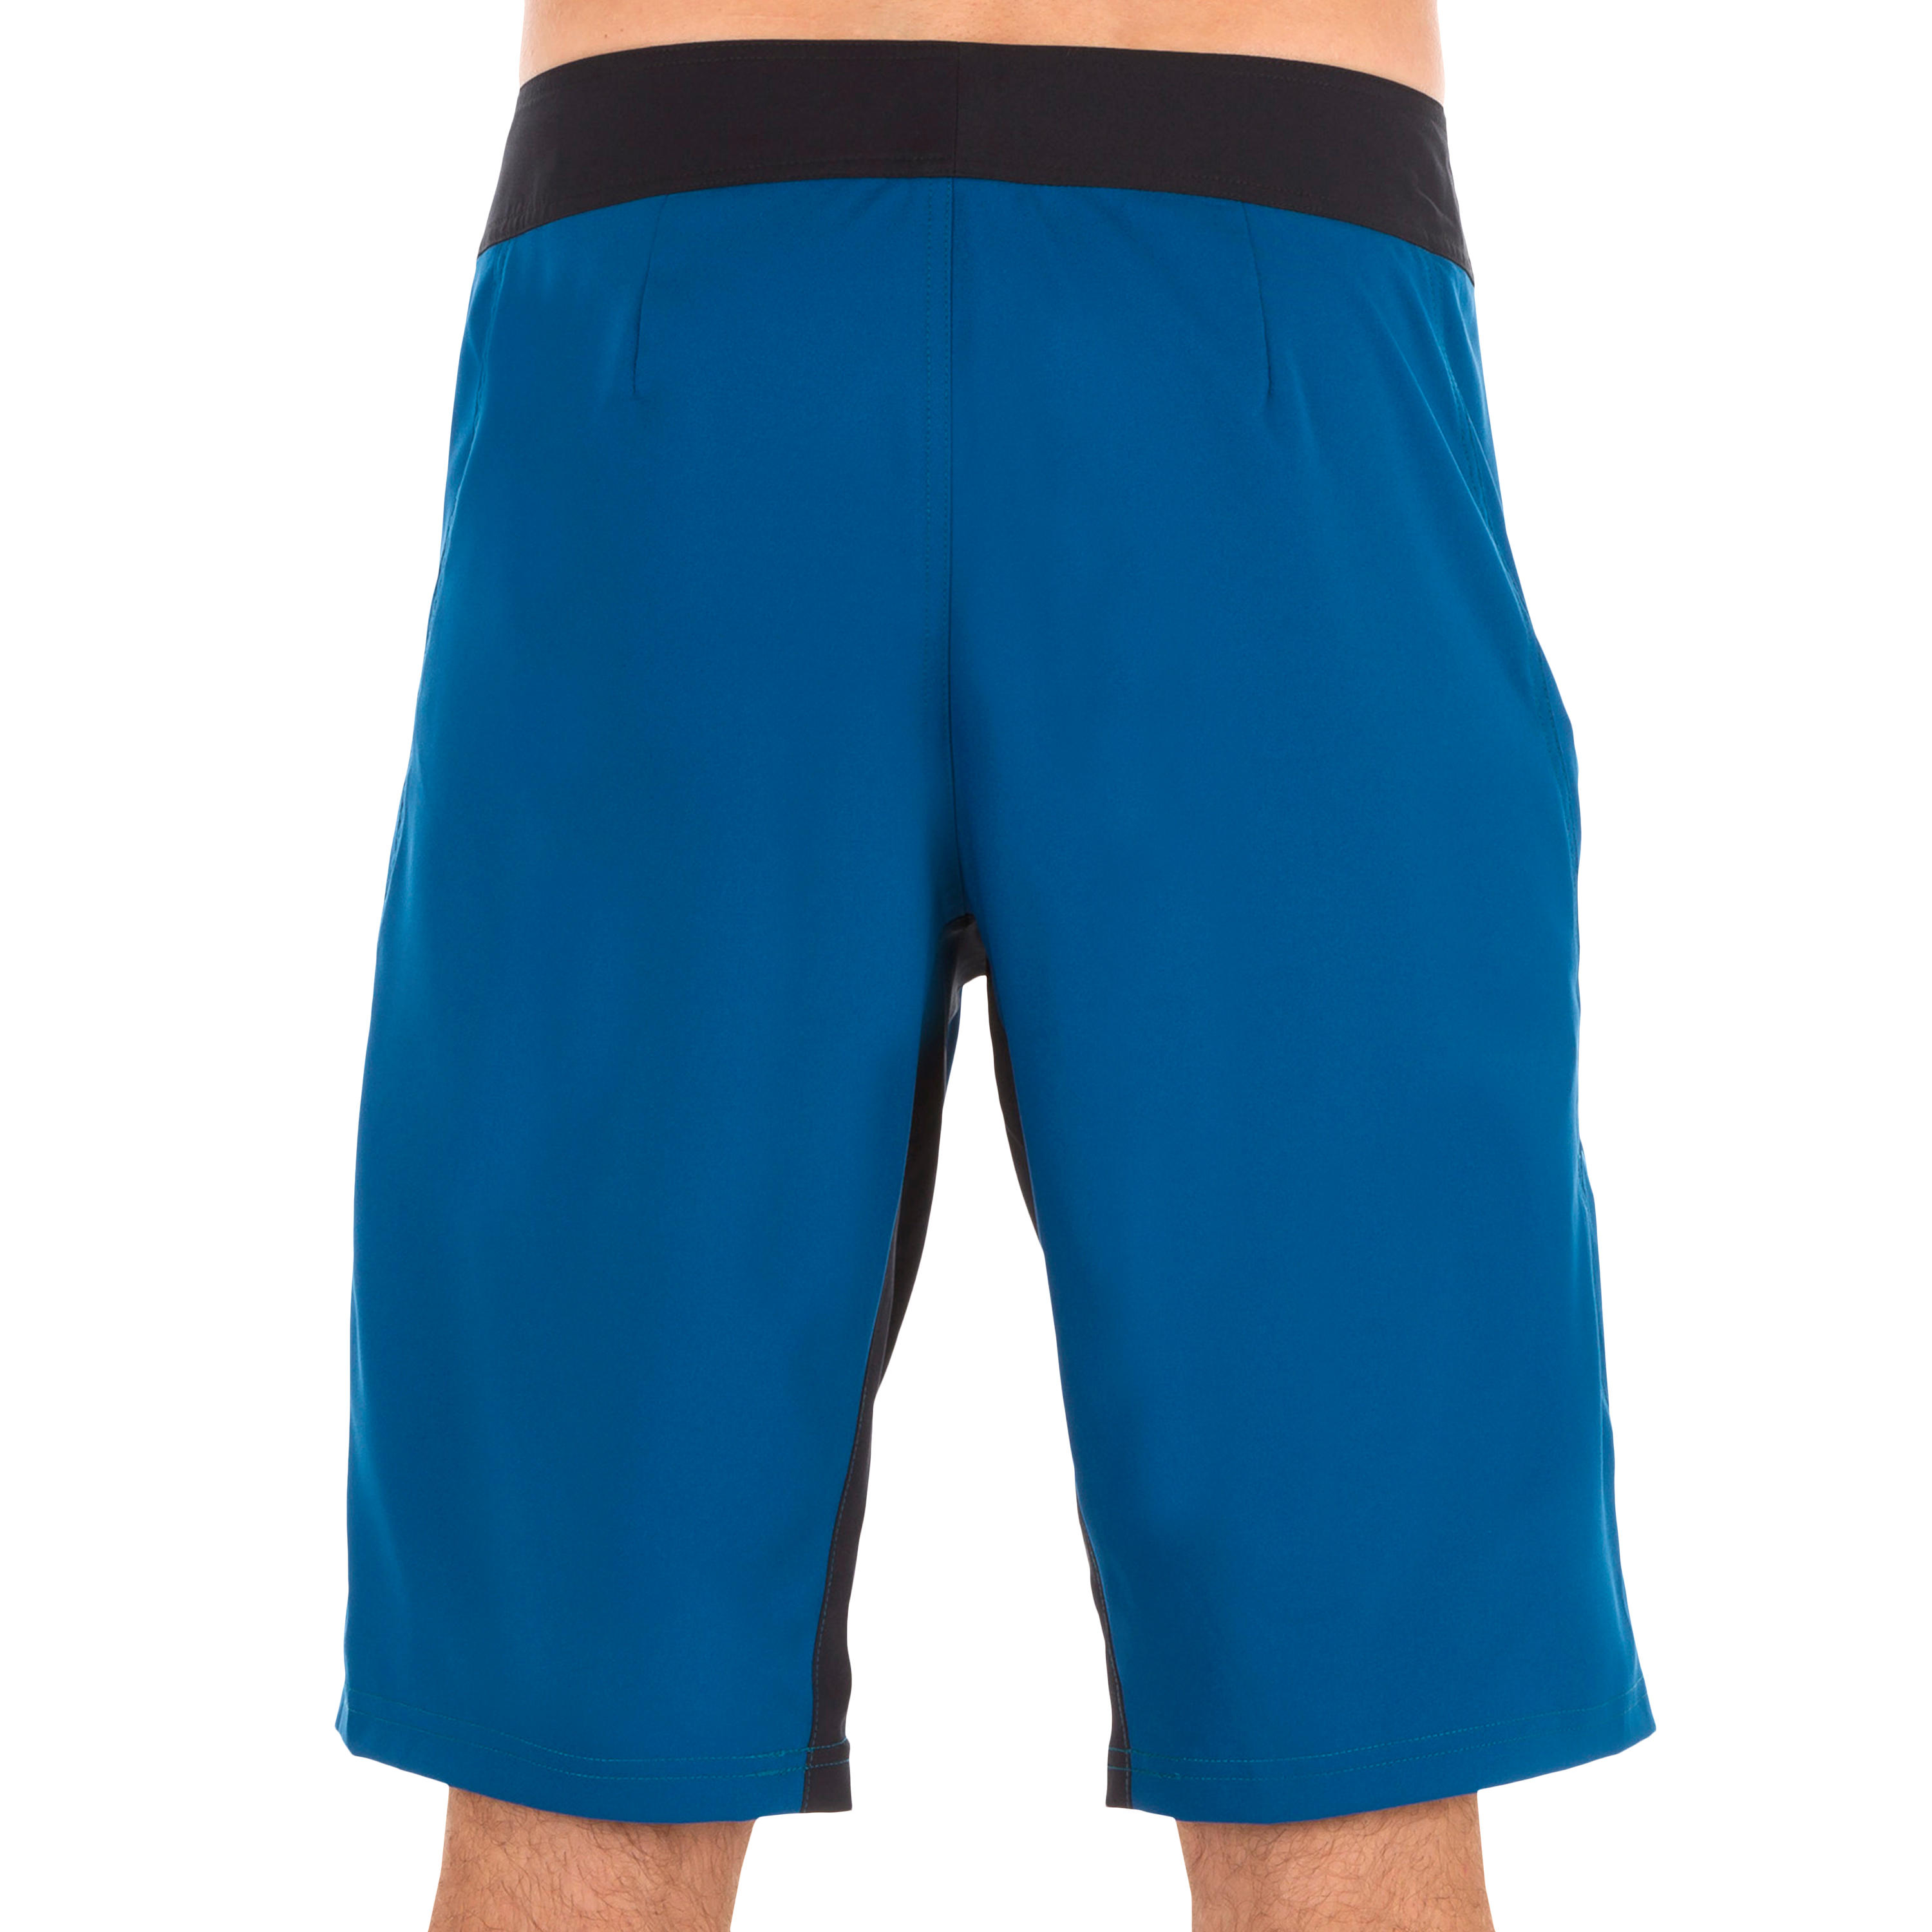 500 long surfing boardshorts plain blue